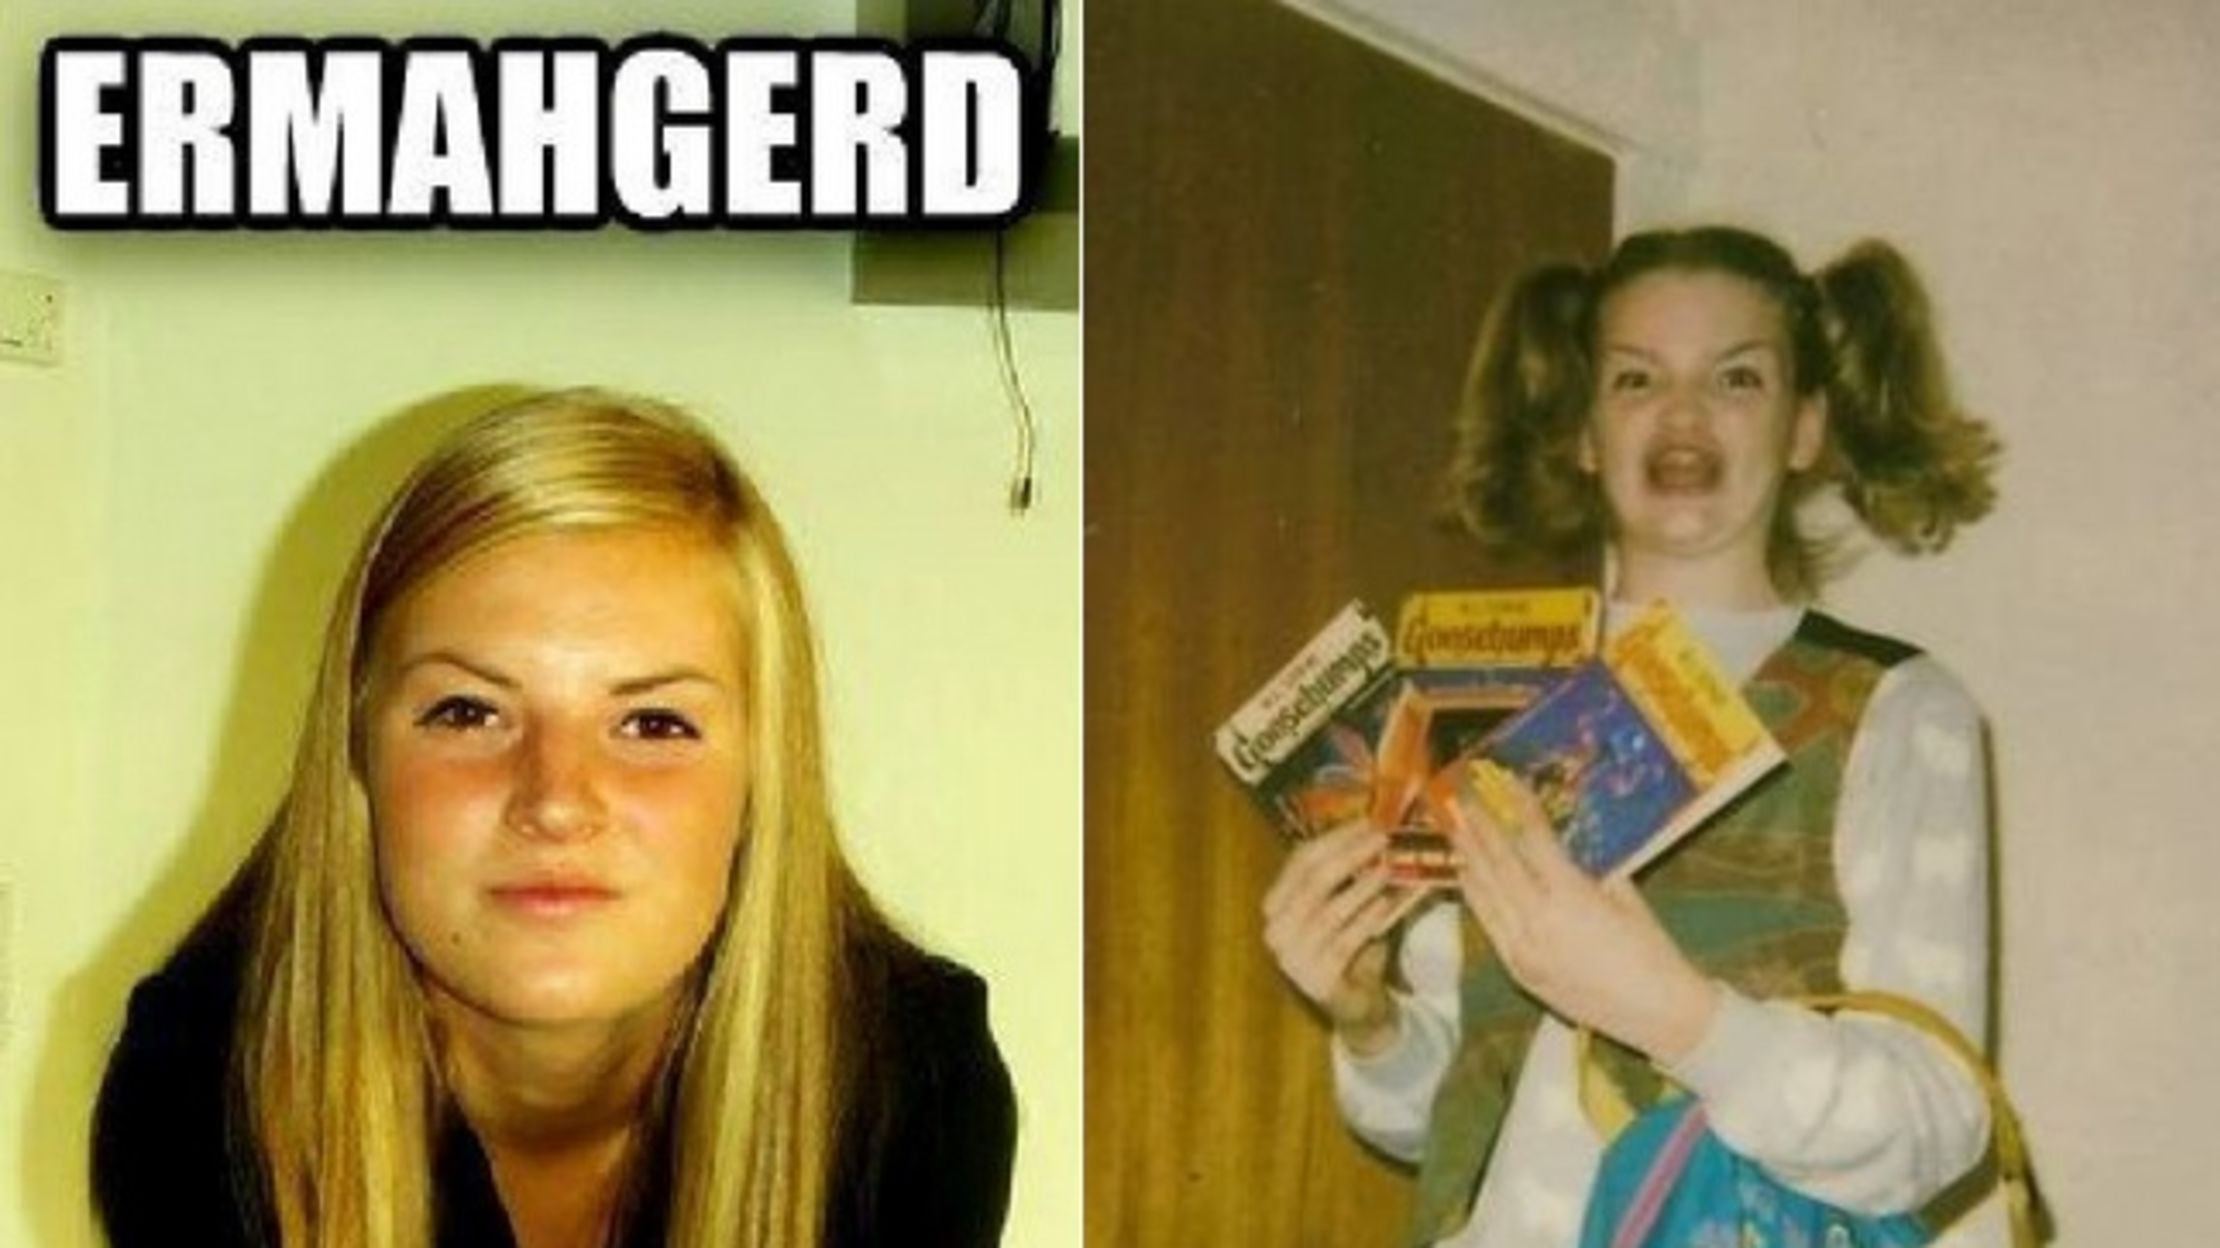 Ermahgerd The Girl Behind The Meme Opens Up About Internet Fame